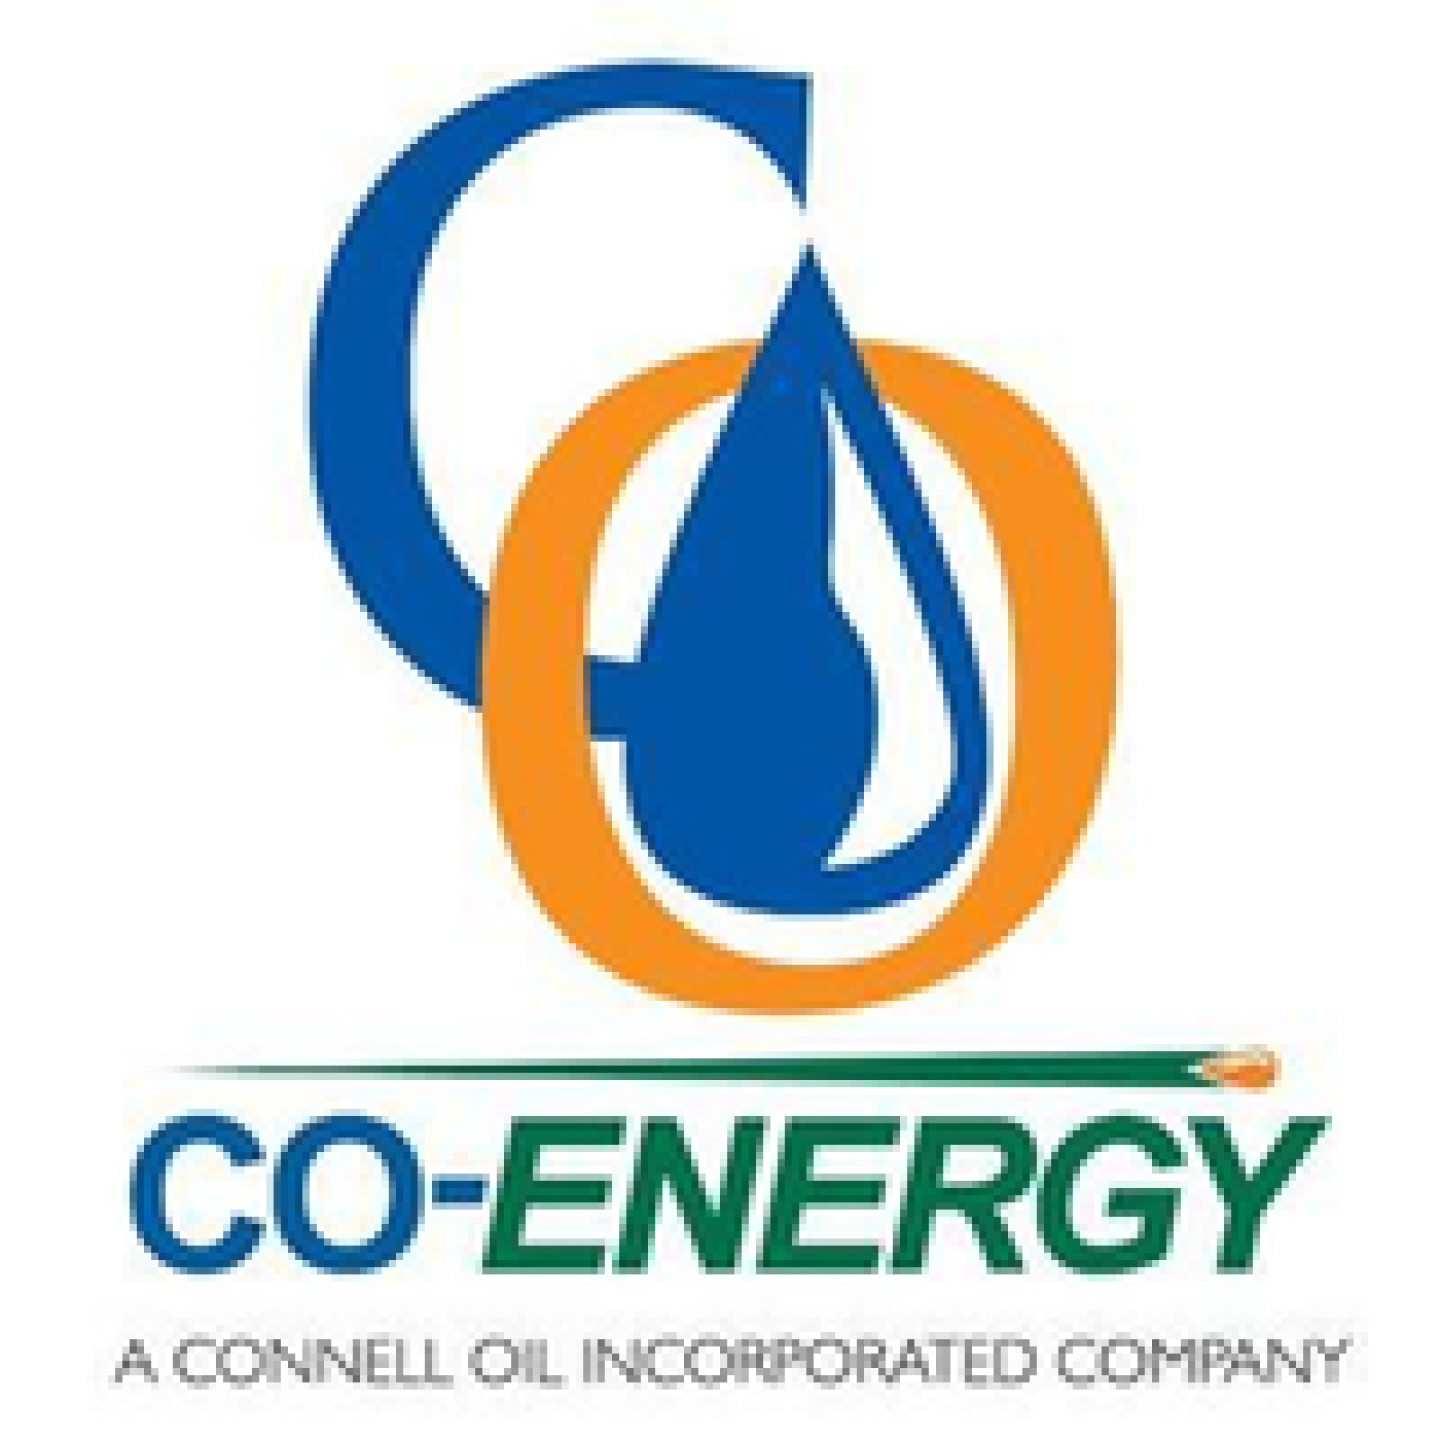 connell oil